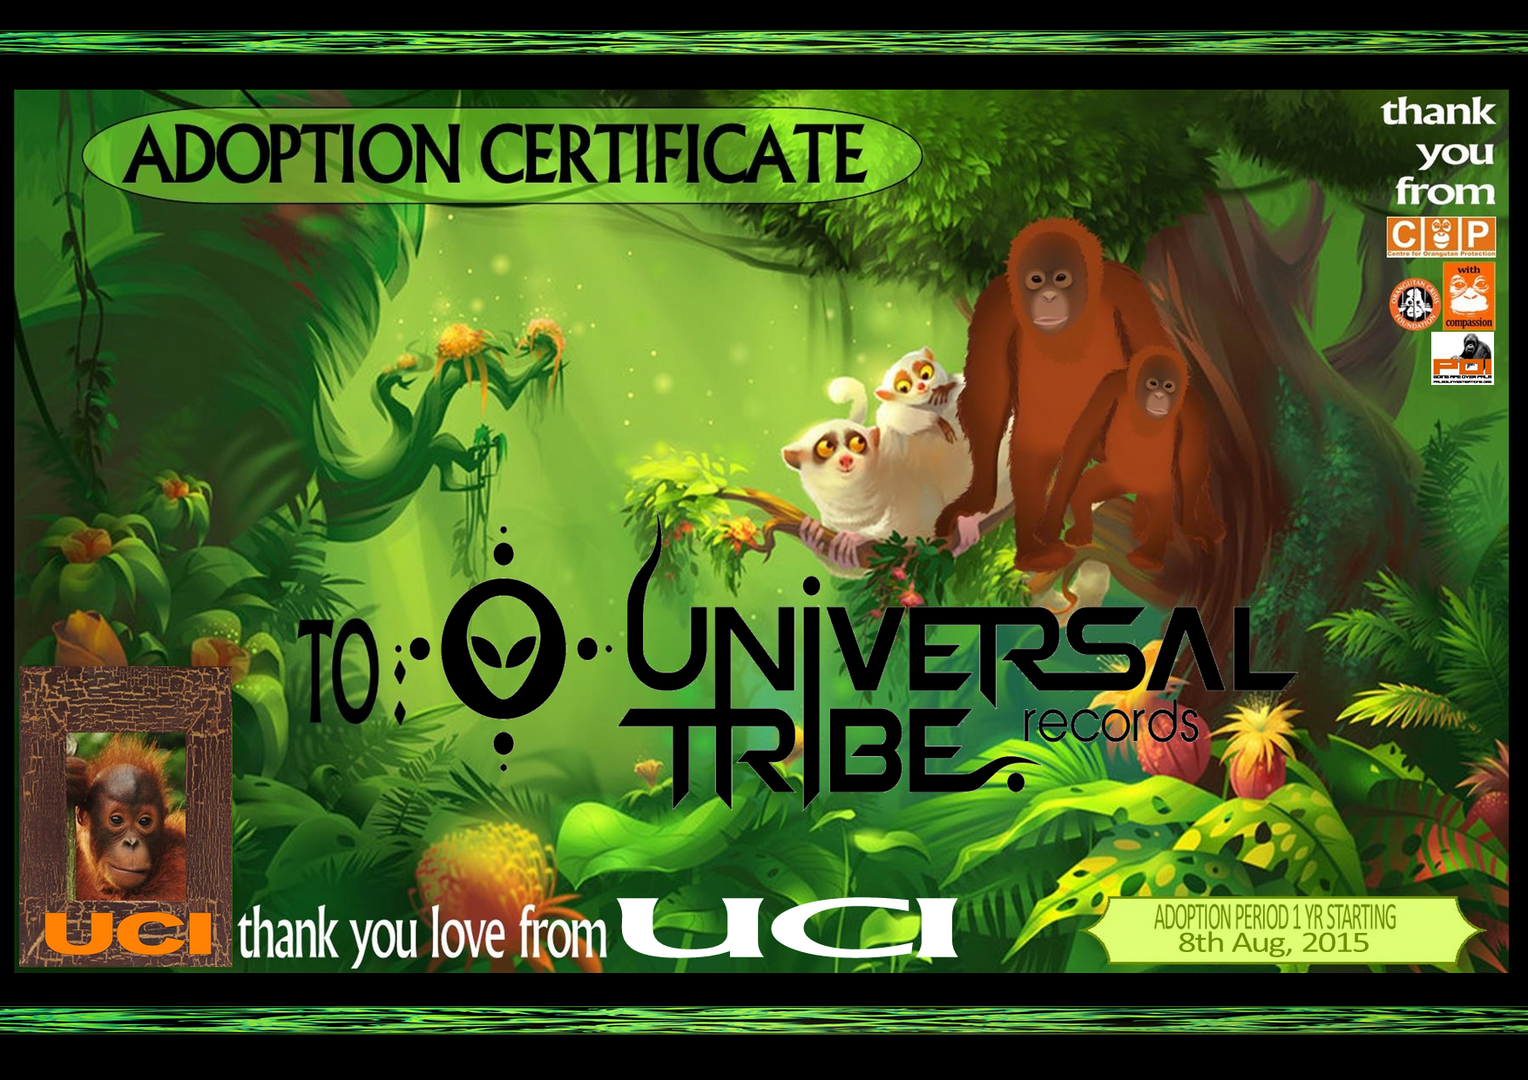 universal tribe records.tif